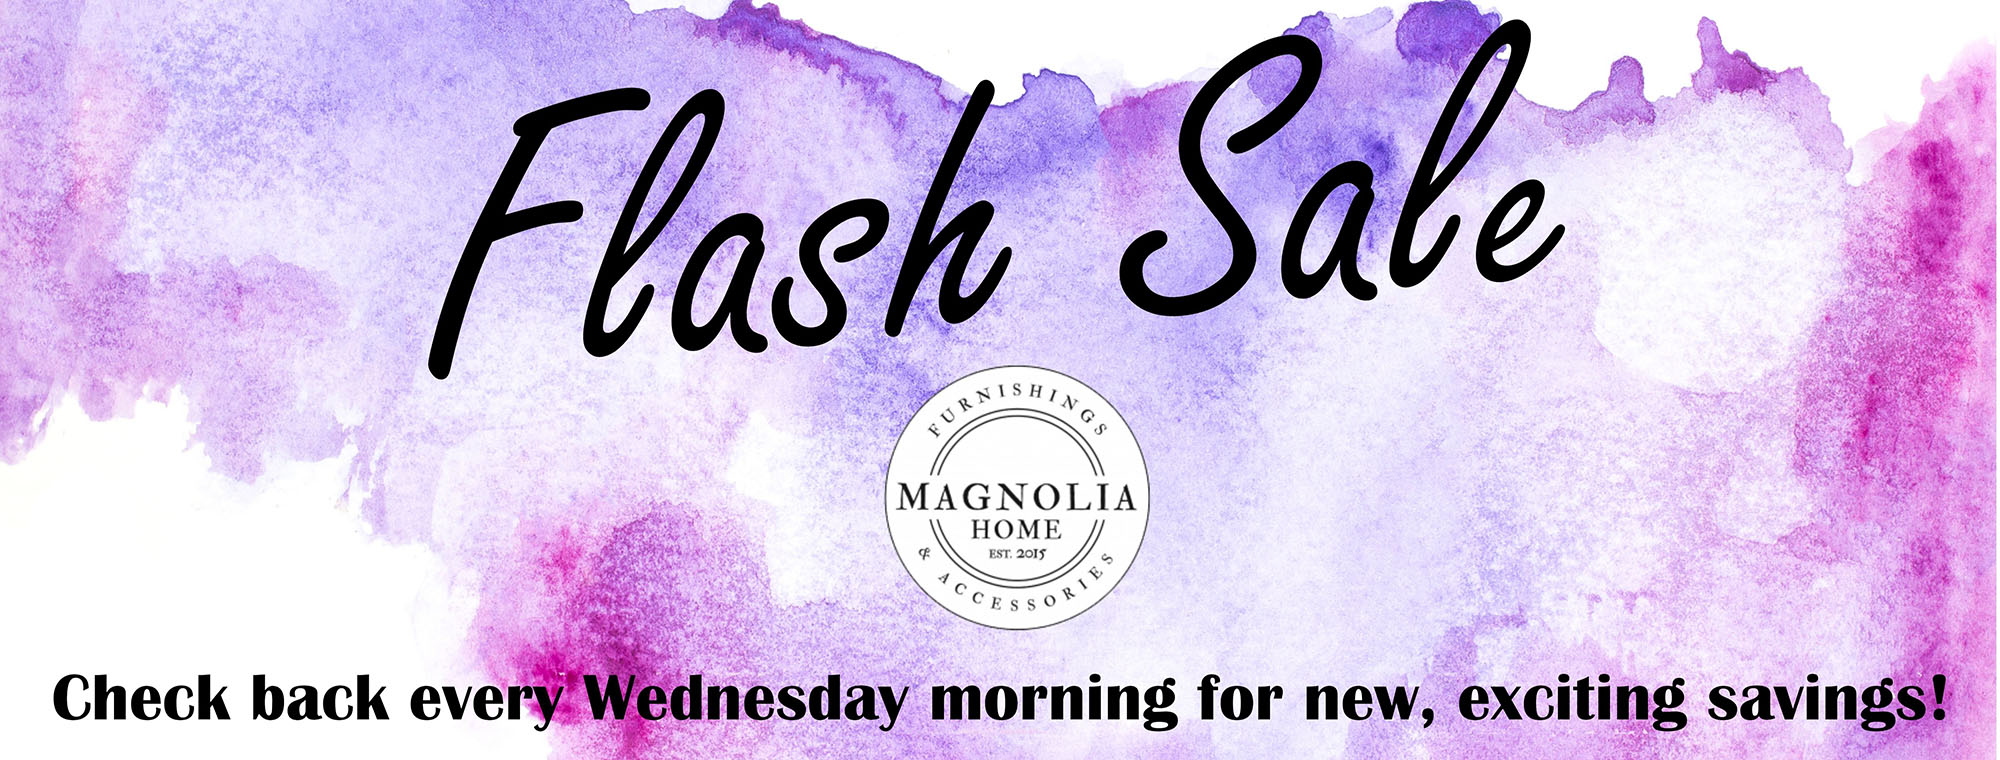 magnolia home flash sale